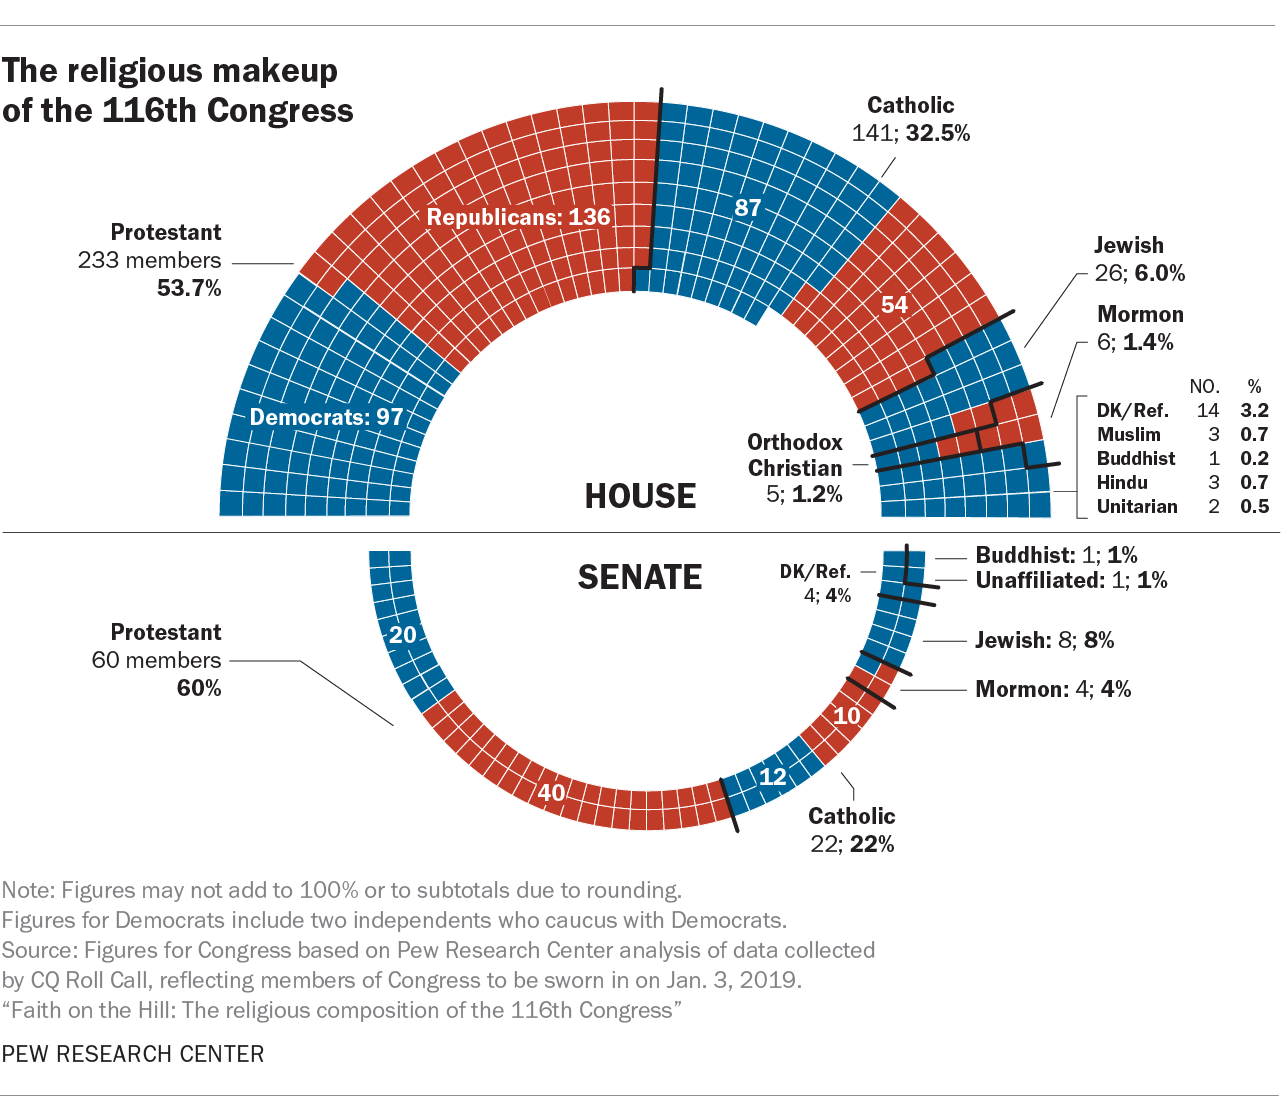 5 facts about the religious makeup of the 116th Congress